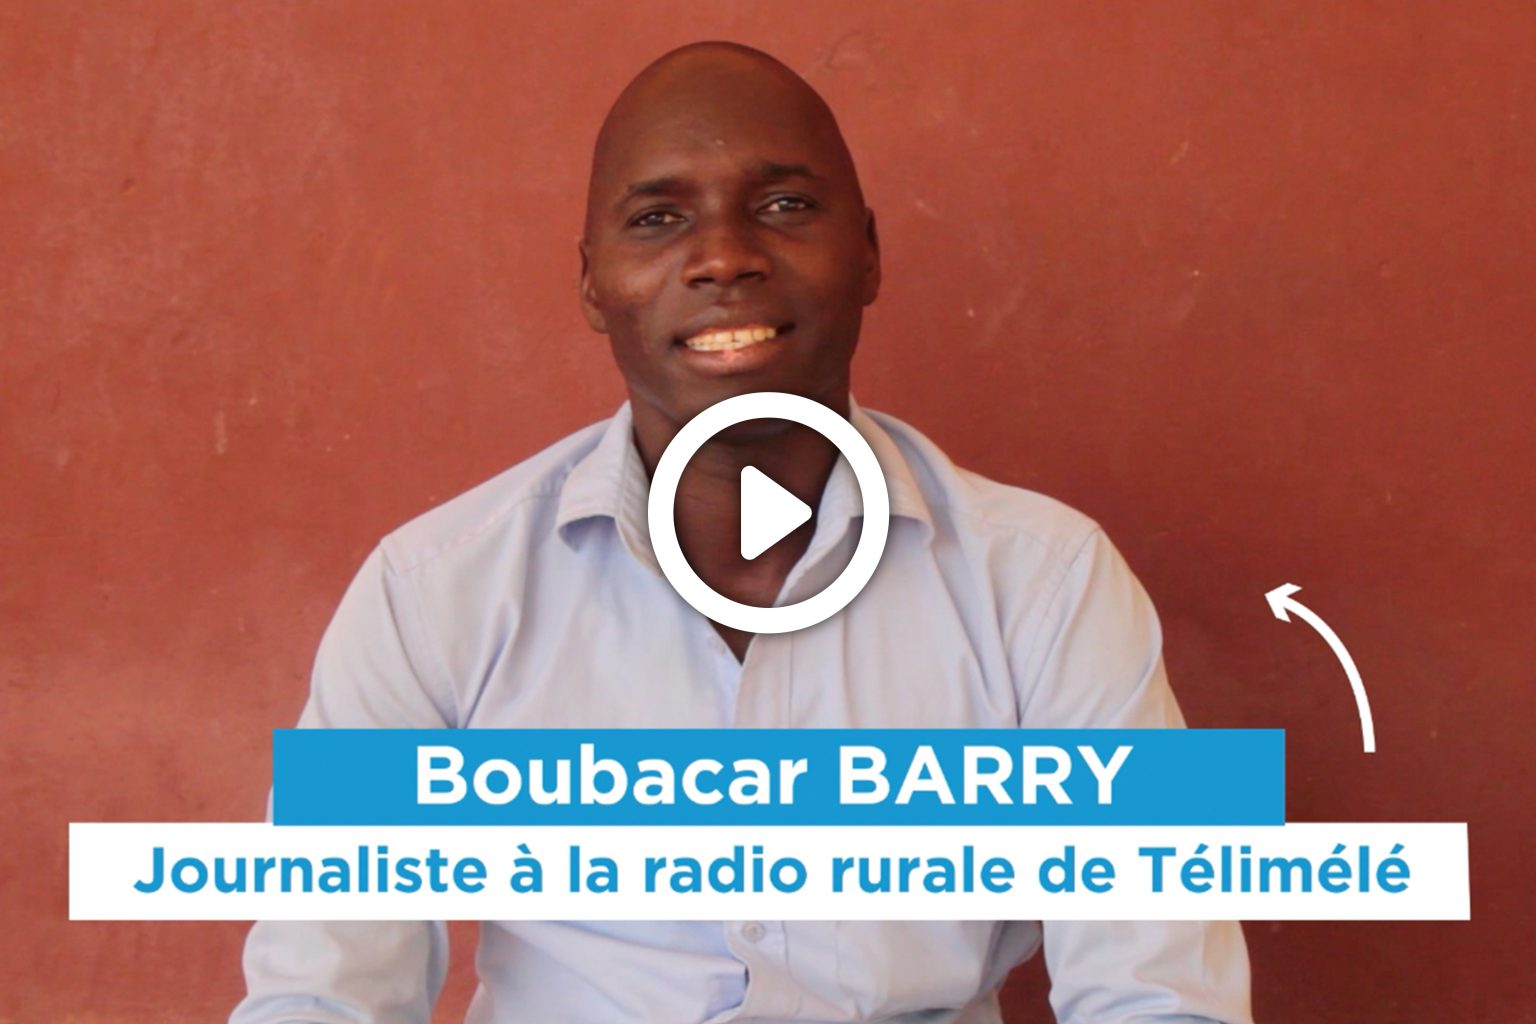 Barry Boubacar